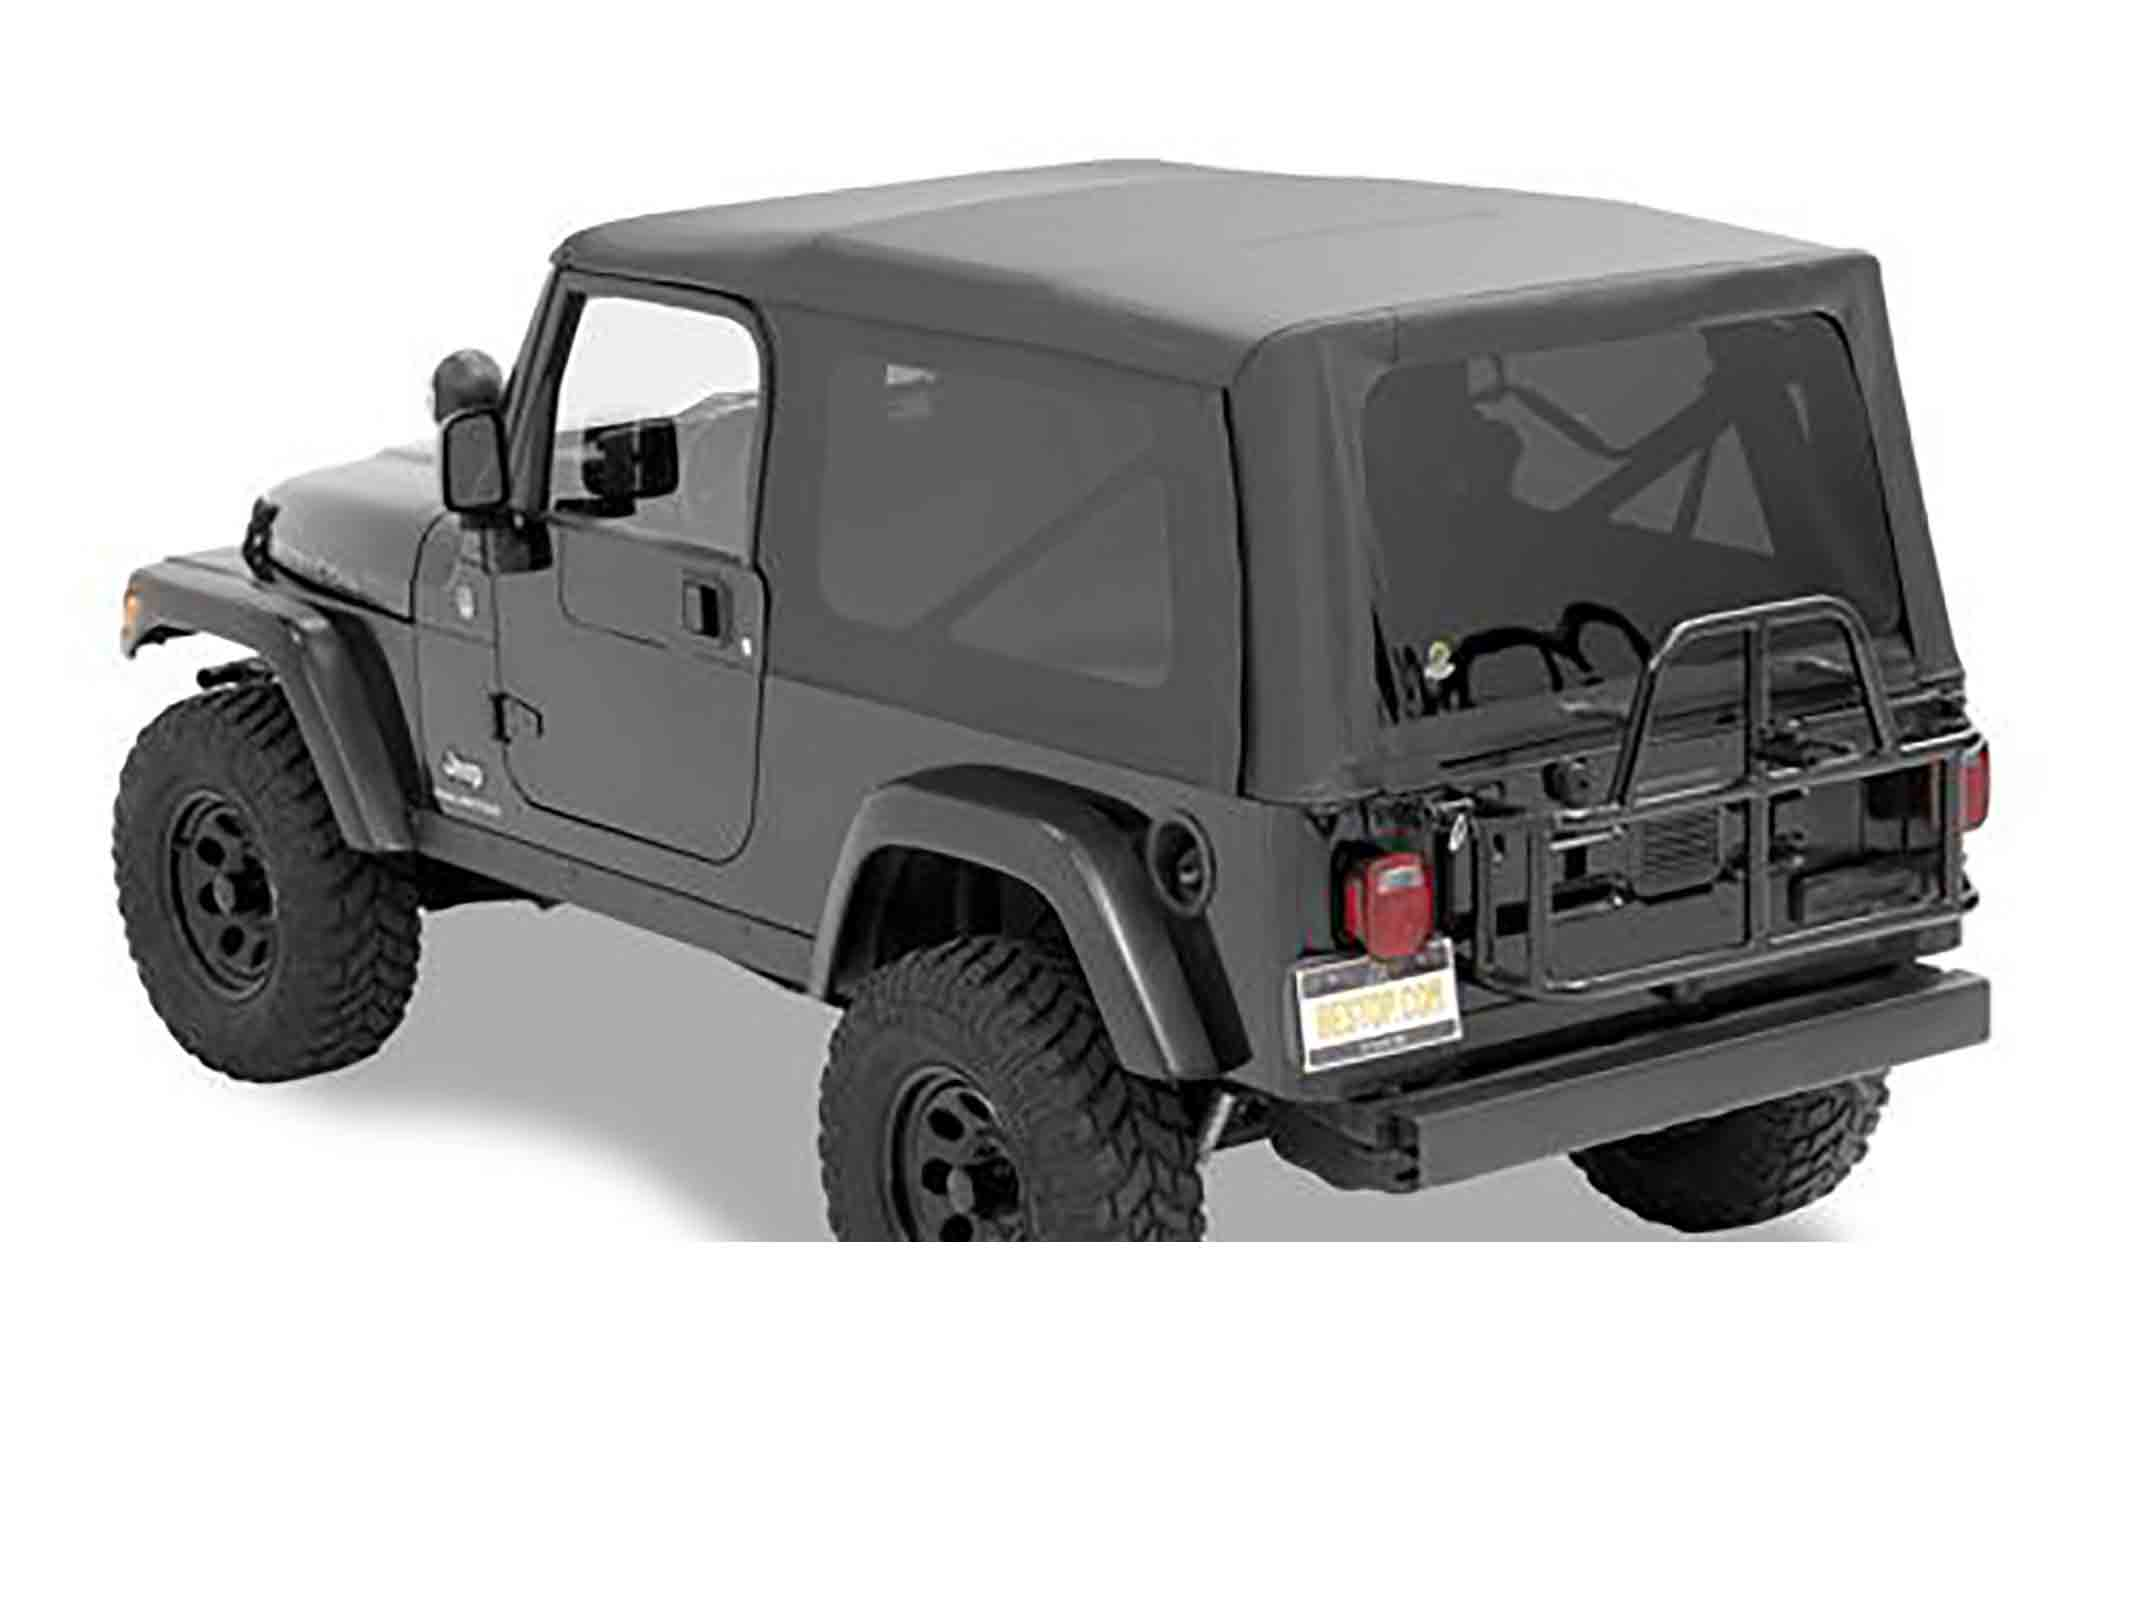 Supertop nx wrangler tj unlimited 04 06 black diamond ricambi jeep